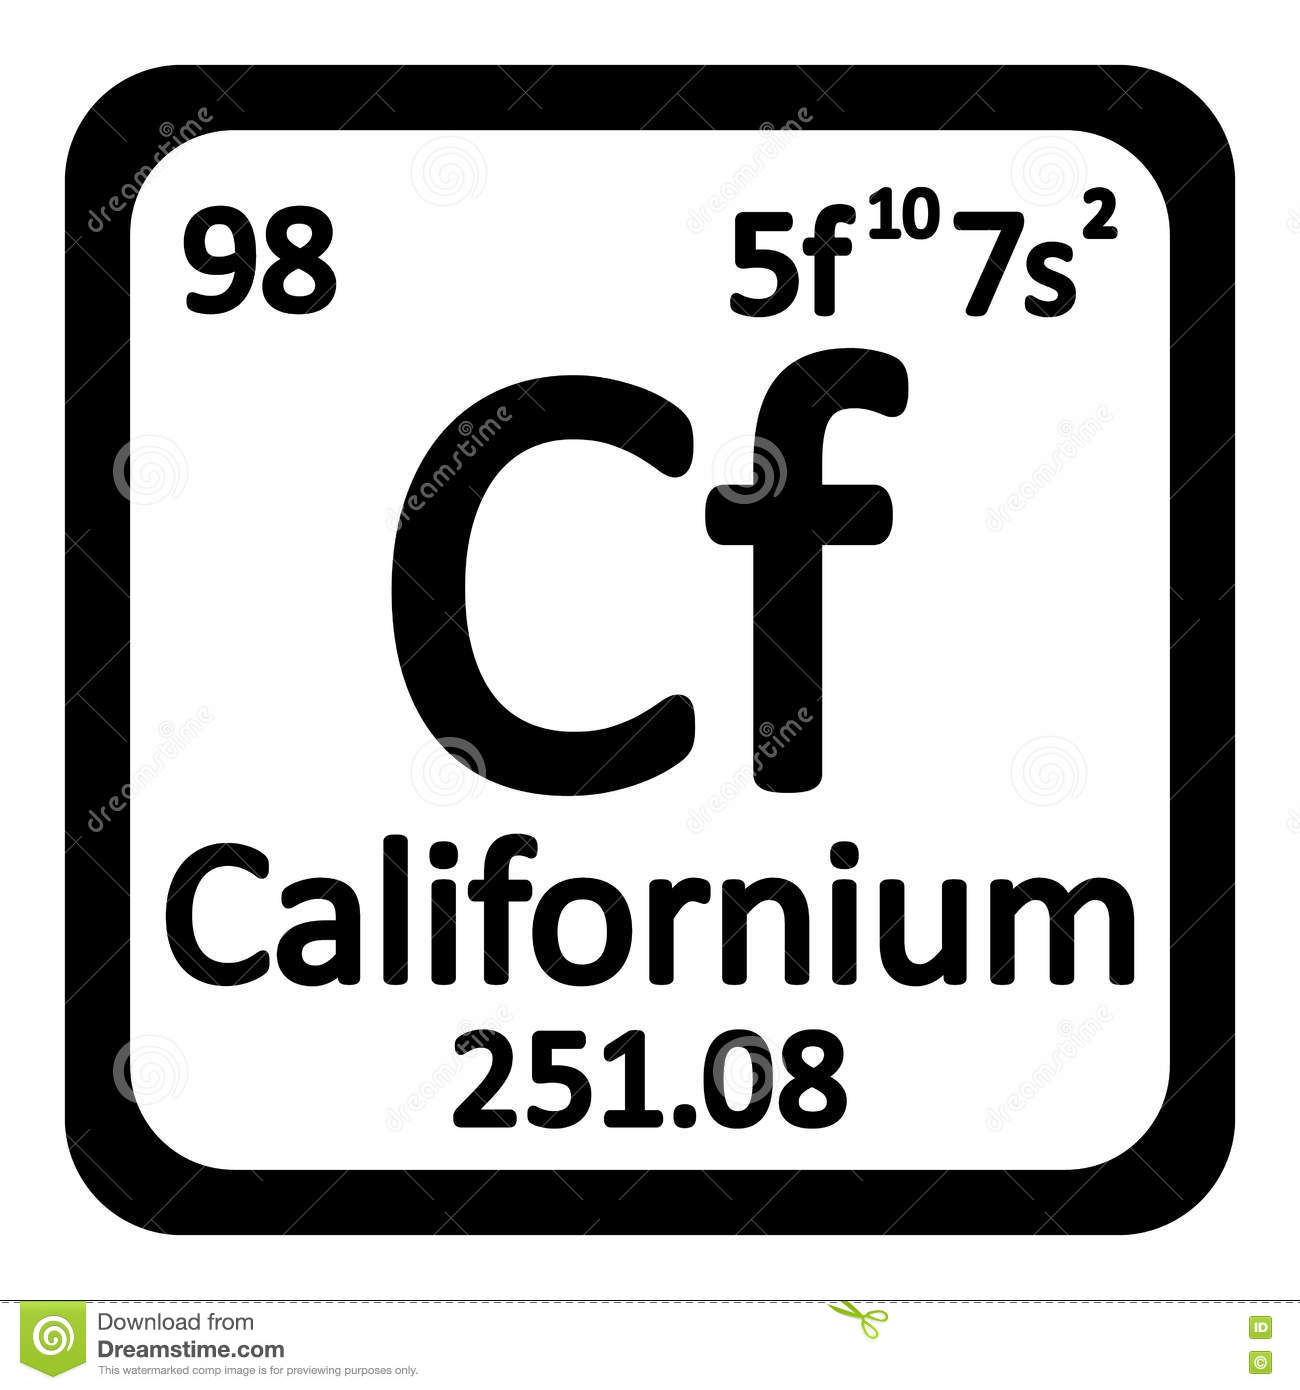 Periodic table californium choice image periodic table images periodic table element californium icon stock illustration royalty free illustration download periodic table element californium gamestrikefo gamestrikefo Images